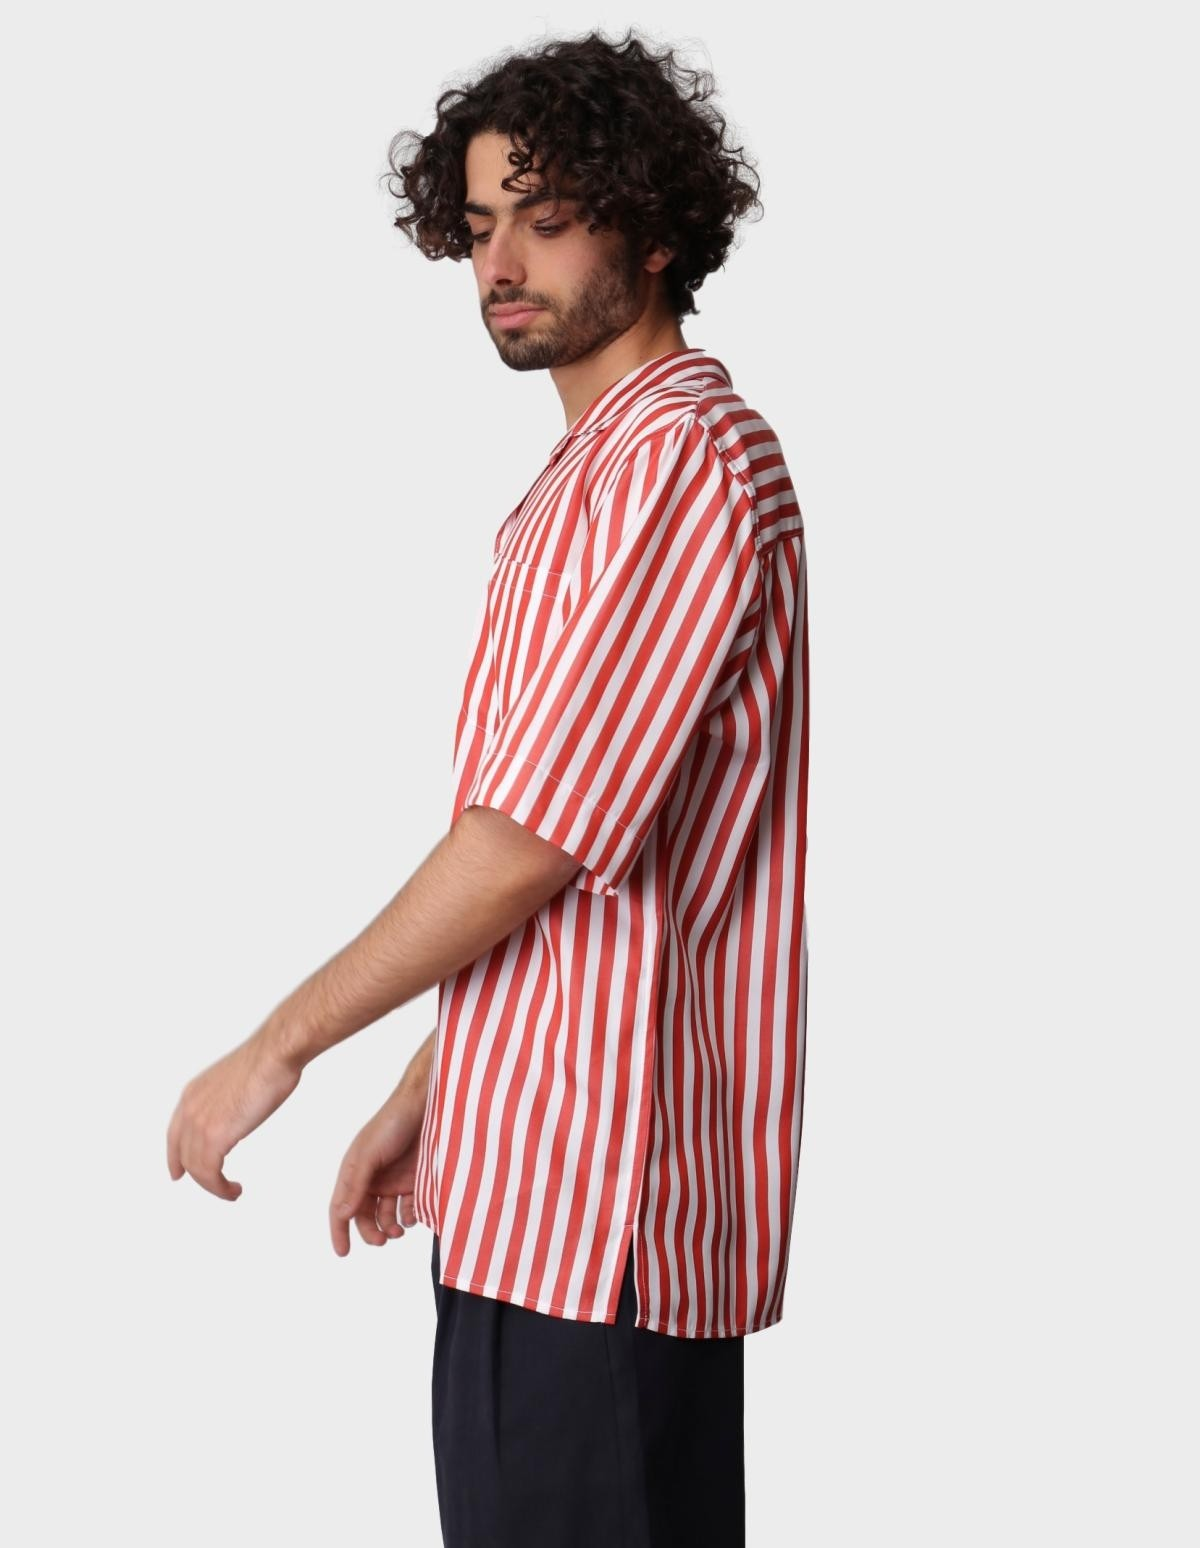 A Kind of Guise Gioia Shirt in  Cherry Stripe